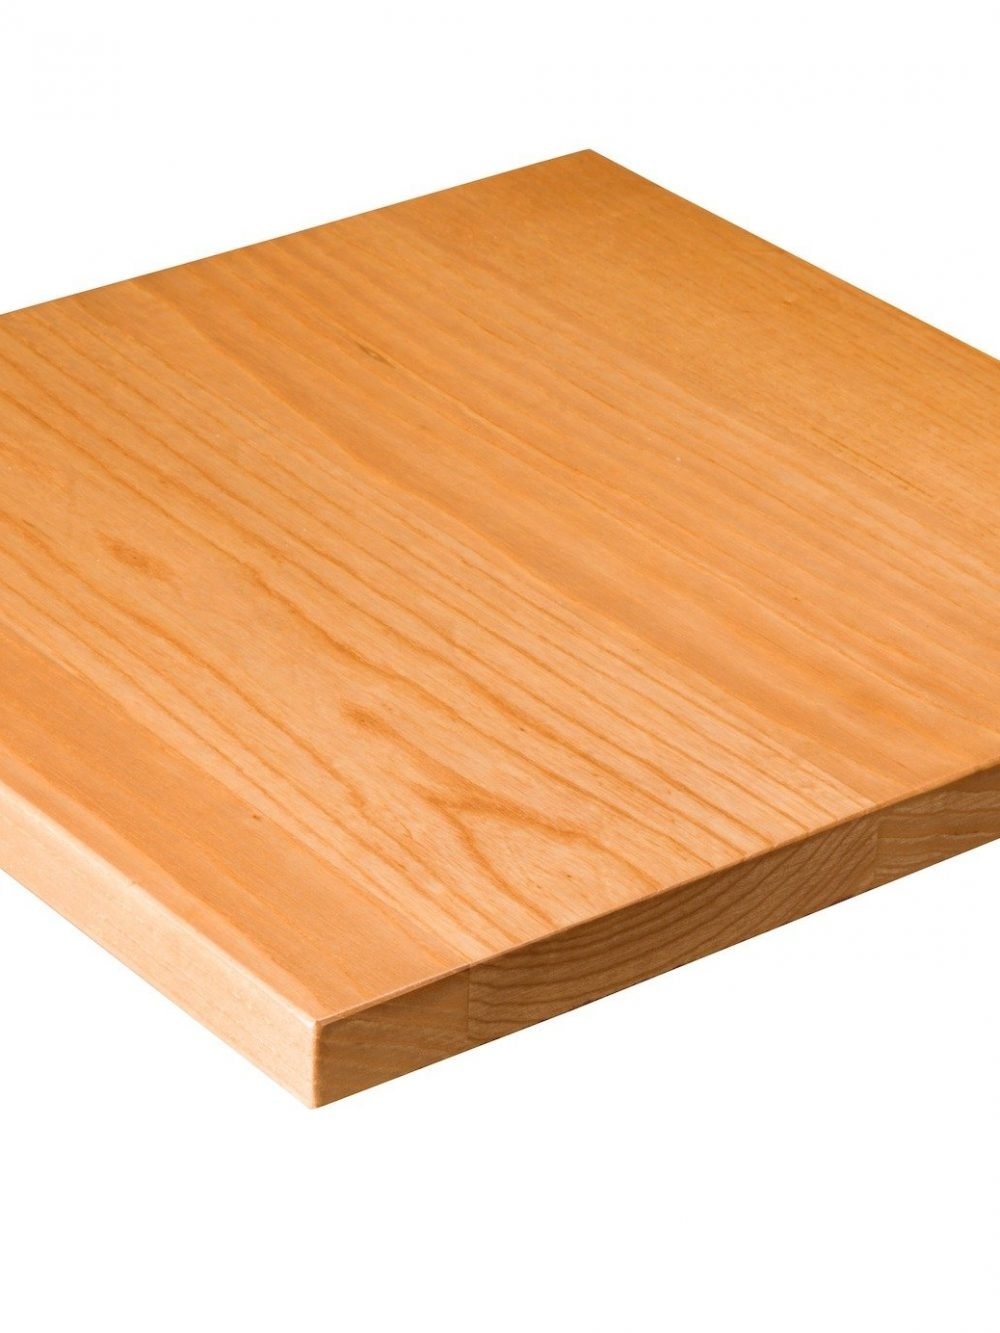 Solid Ash - Light Beech Stain